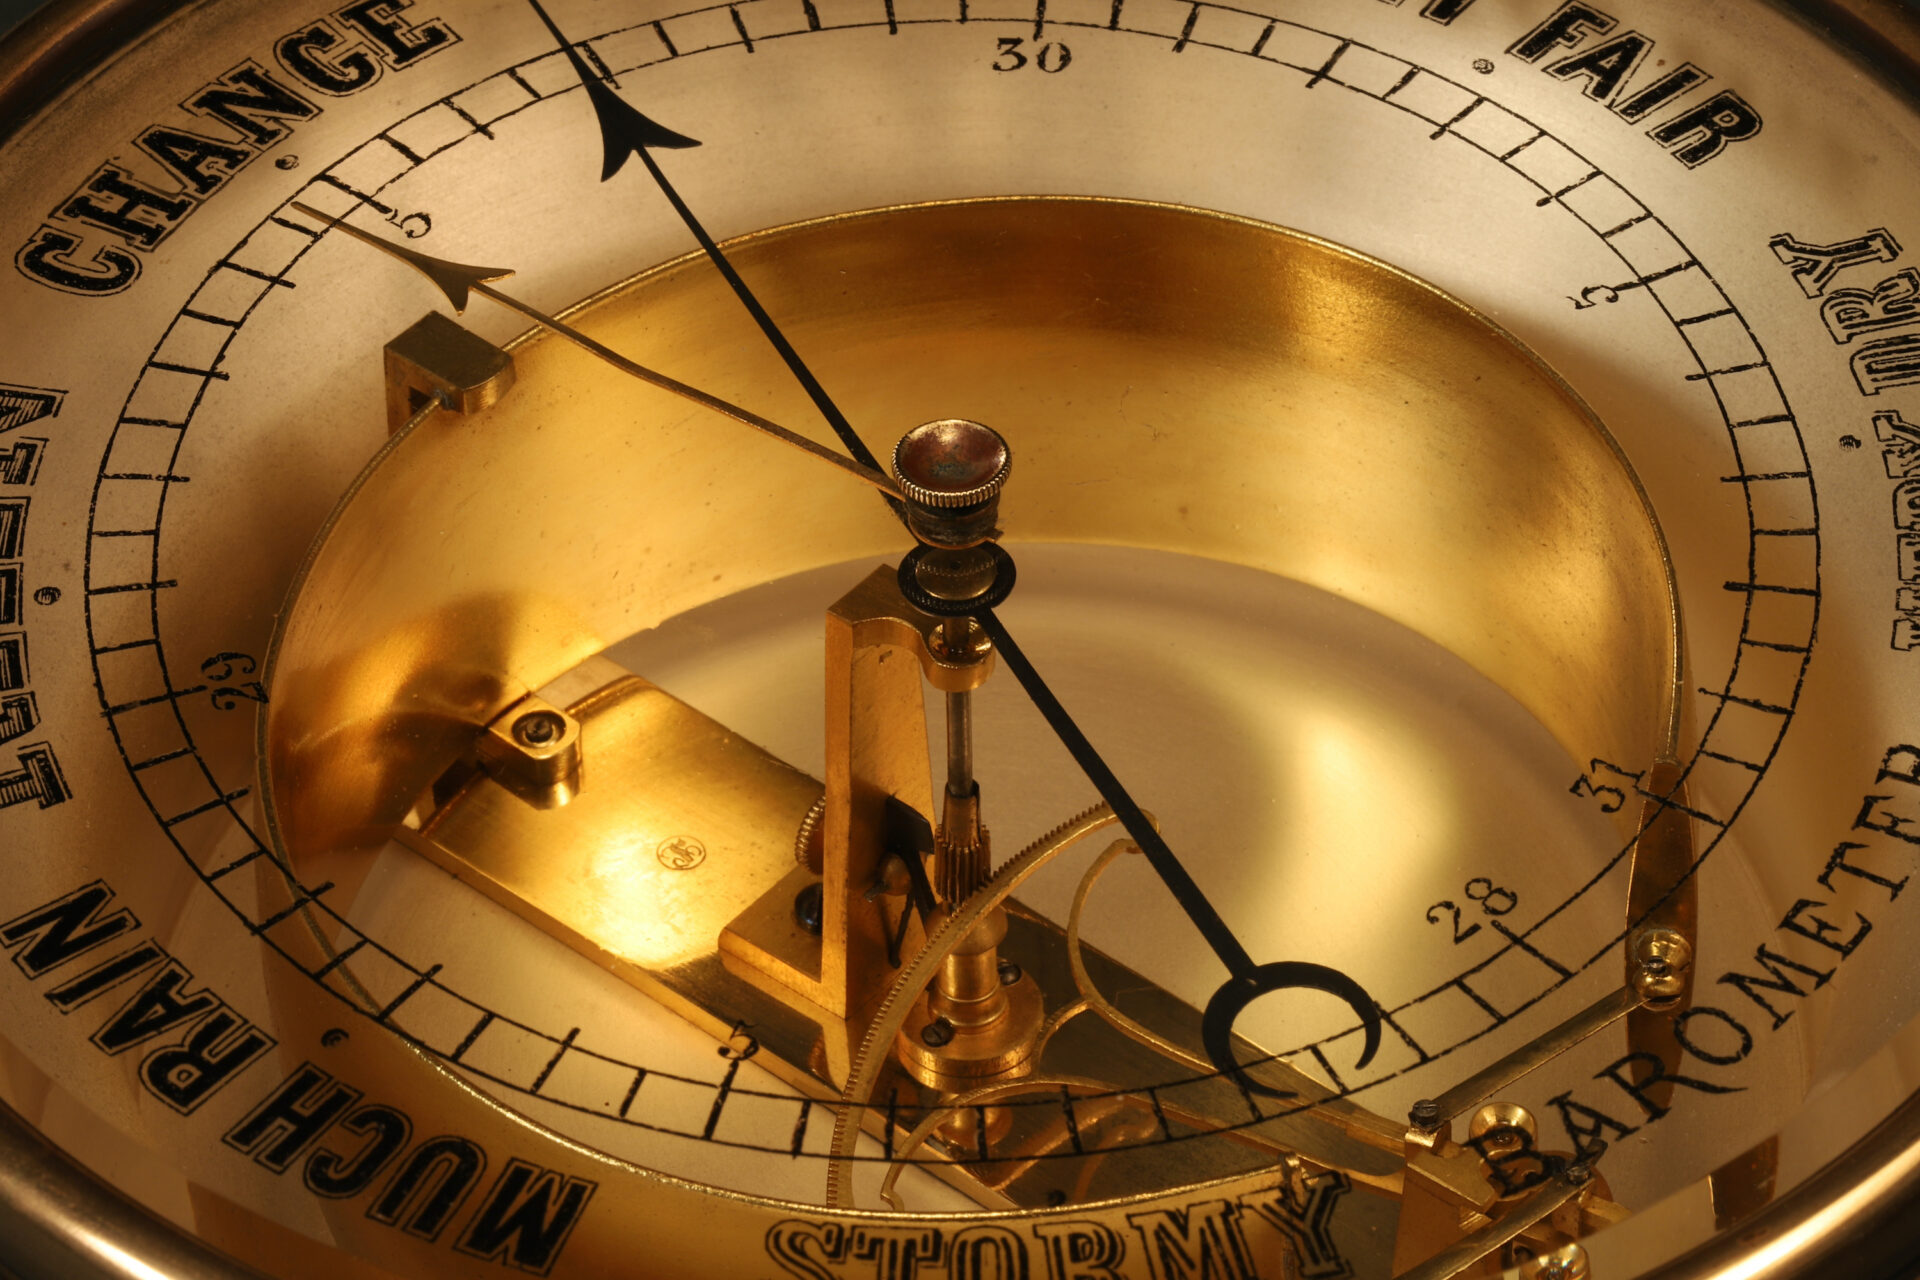 Close up of dial and movement from Bourdon Barometer No 15178 c1880